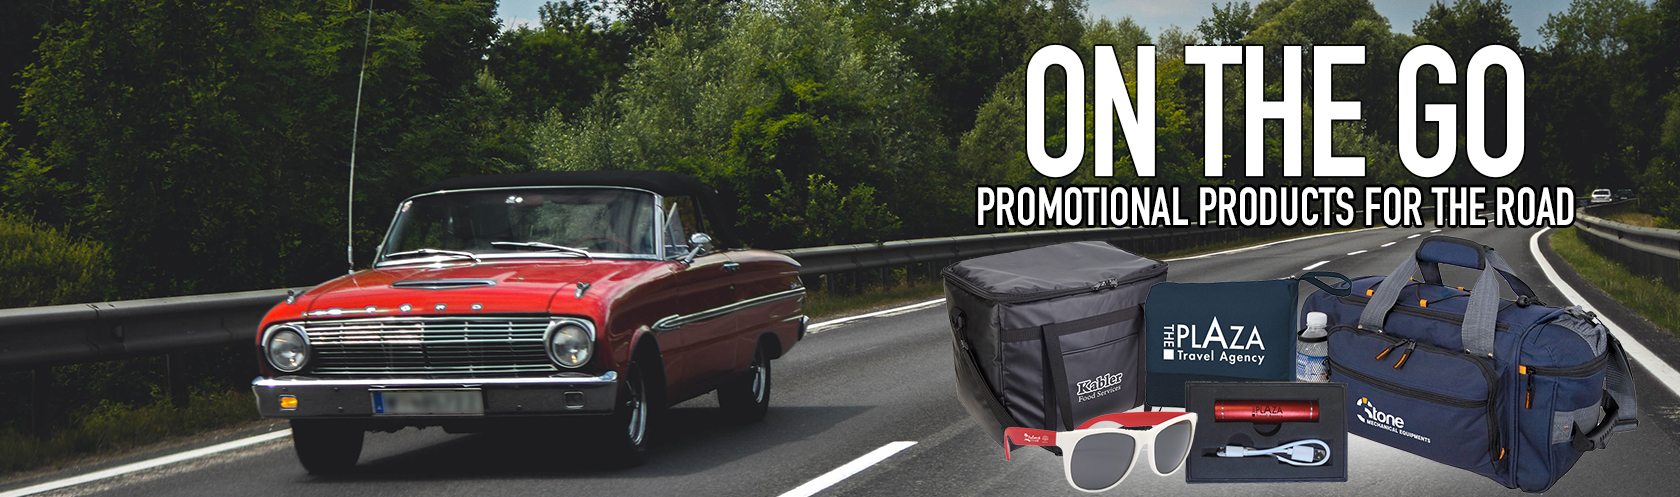 On the Go: Promotional Products for the Road